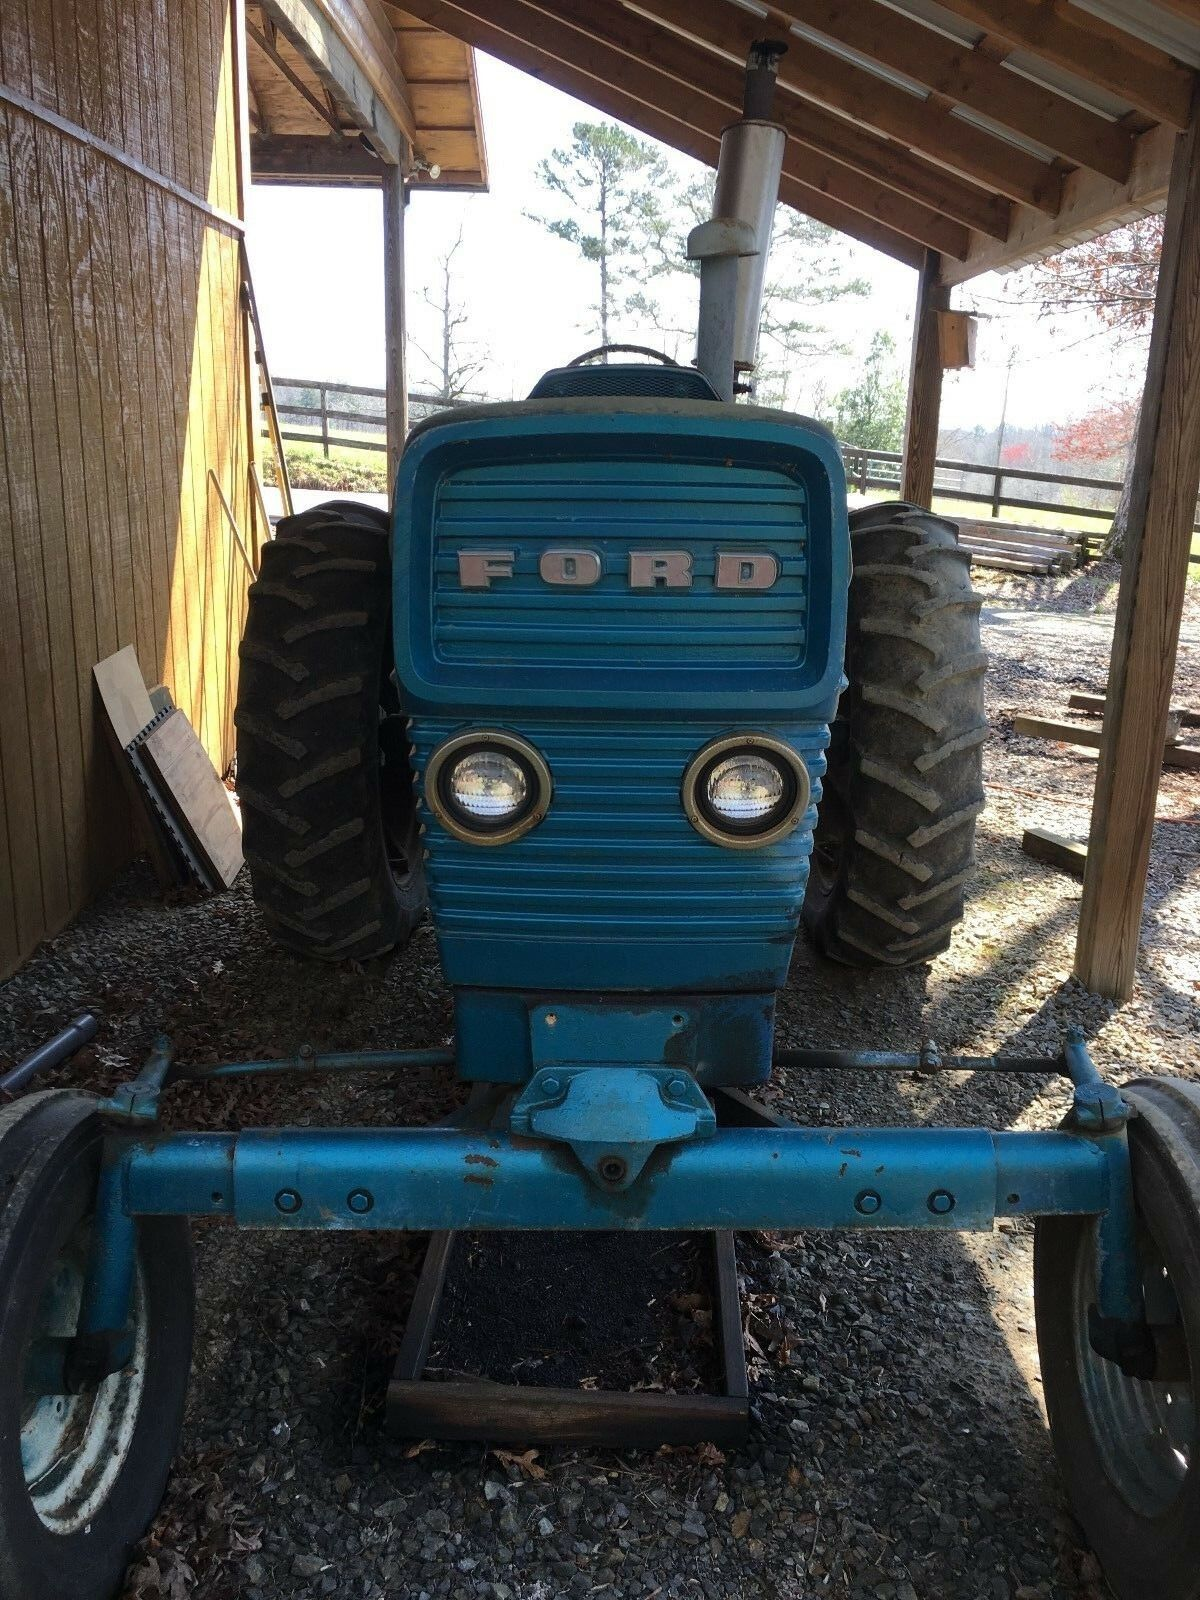 FORD COMMANDER 6000 tractor 1 of 4 See More